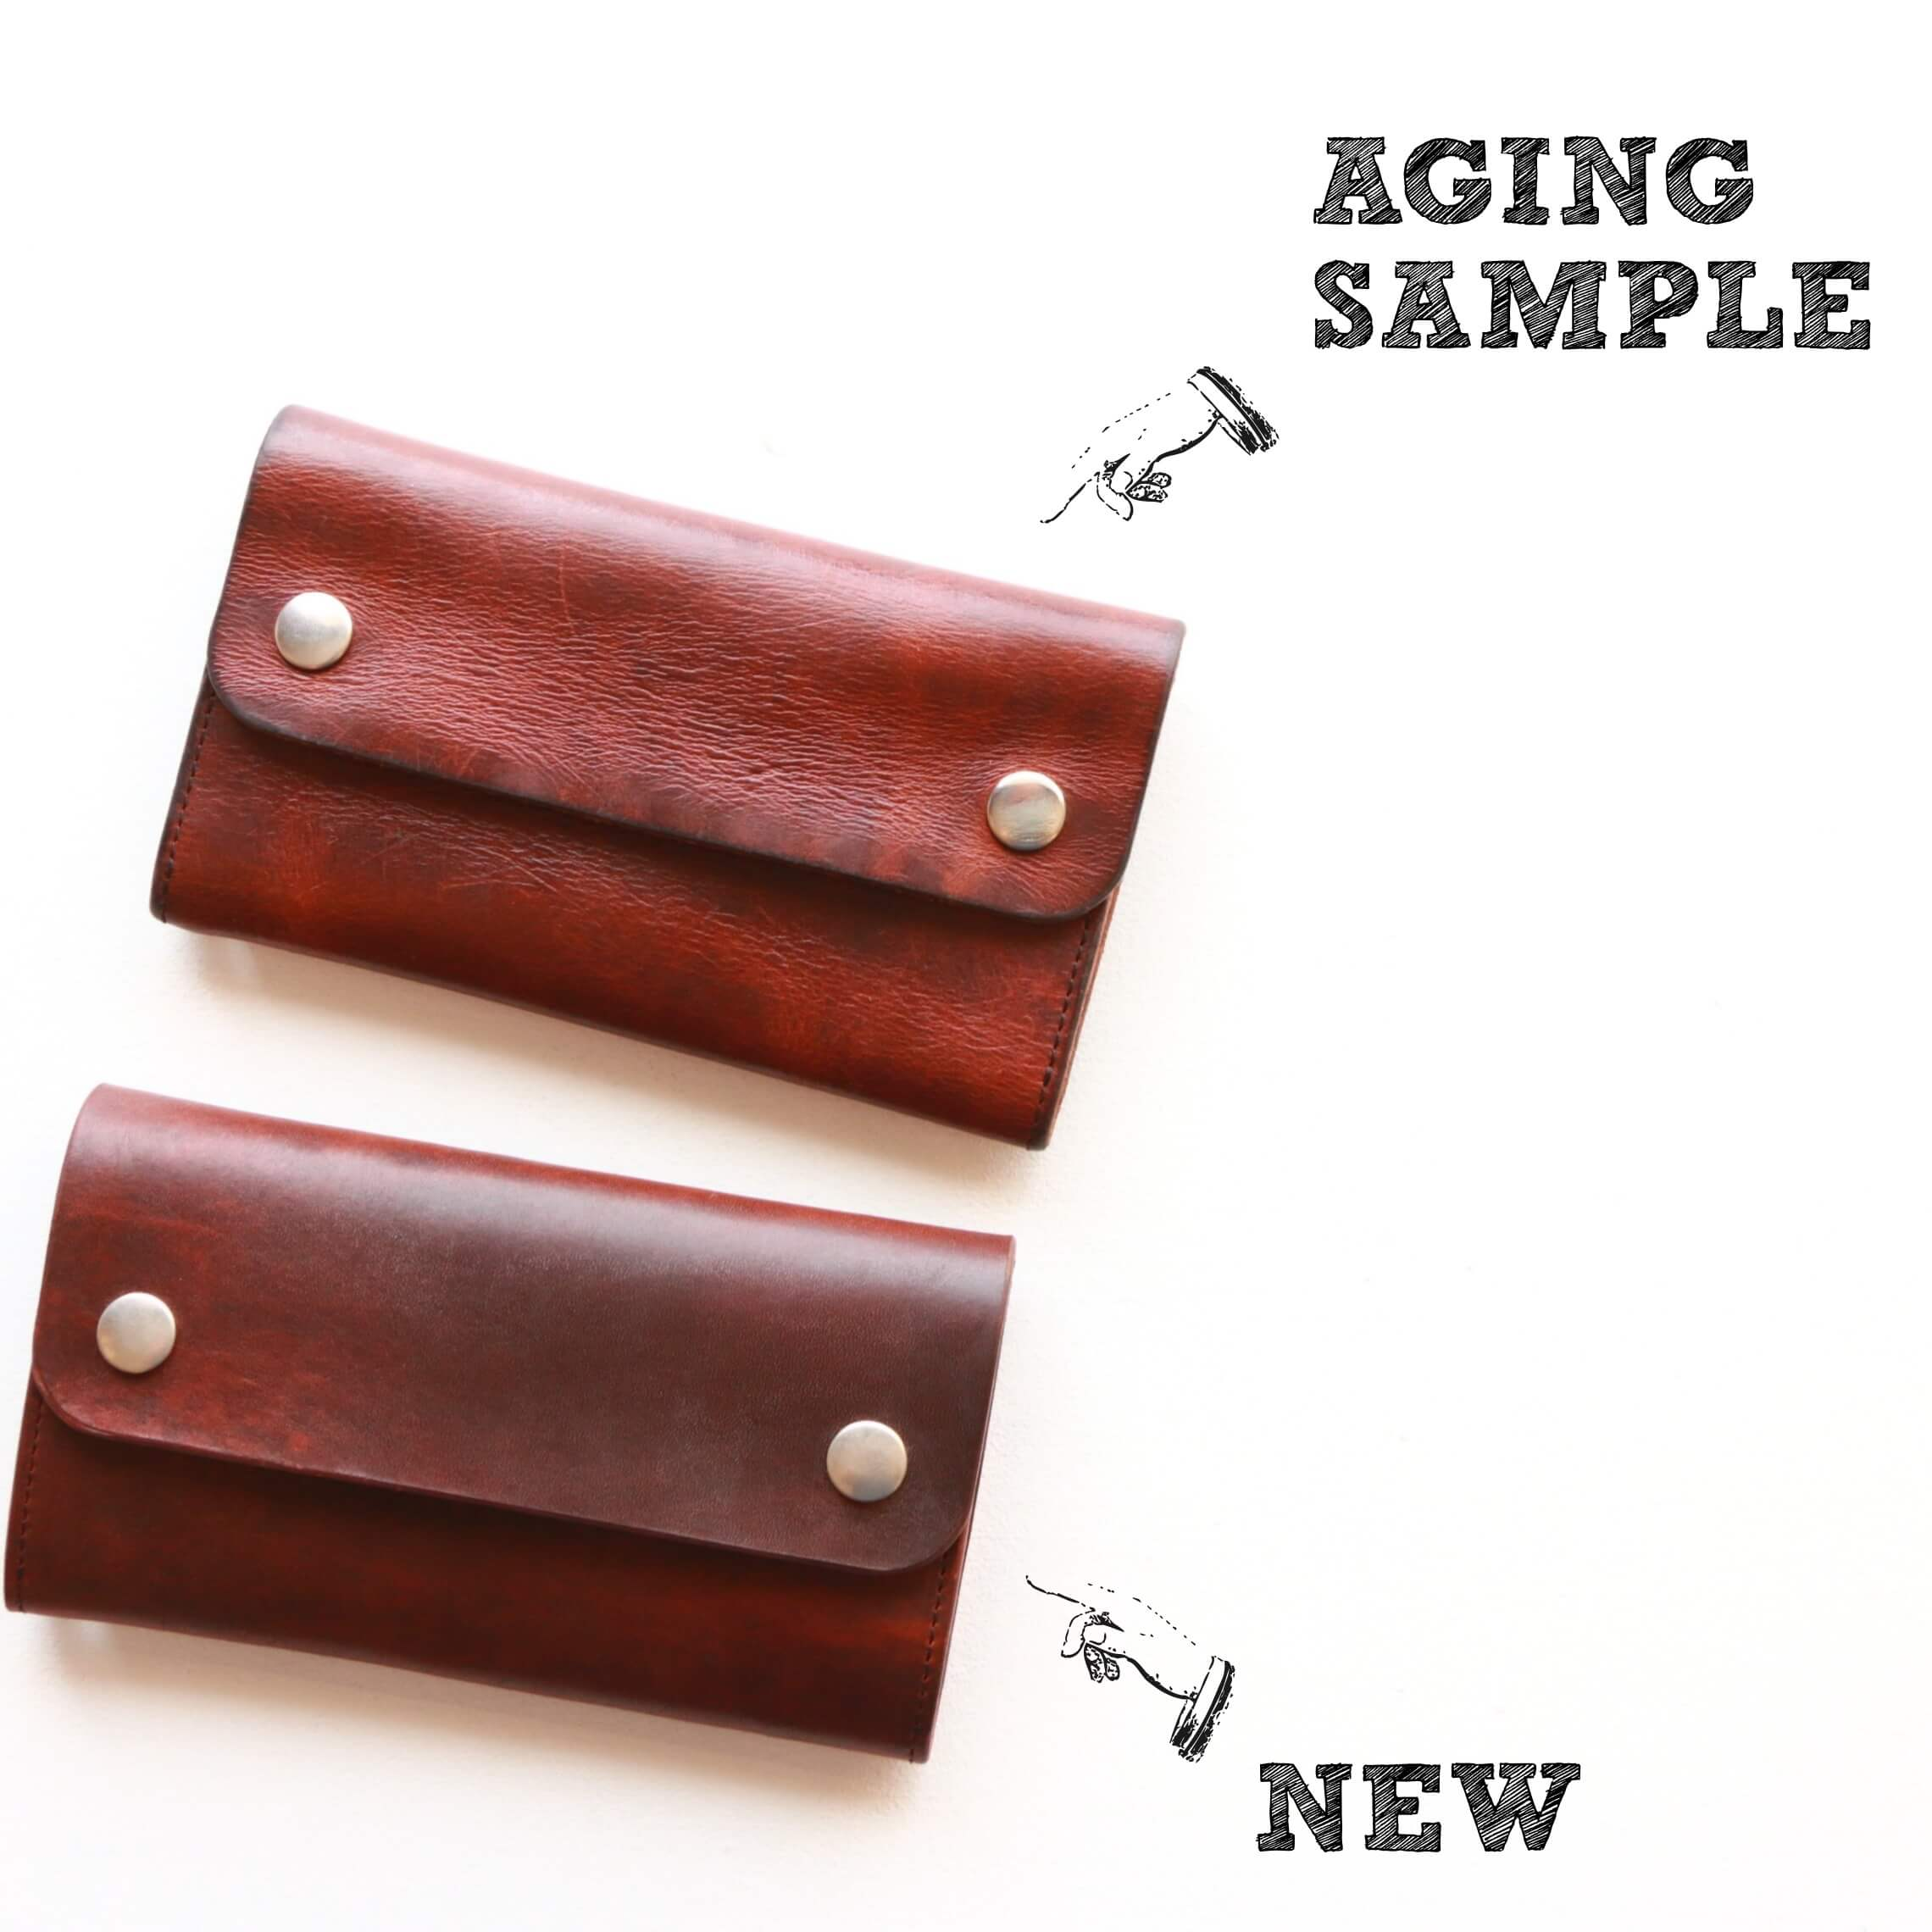 Vintage Works ヴィンテージワークス Leather Wallet アメリカンレザーウォレット VWSW-7